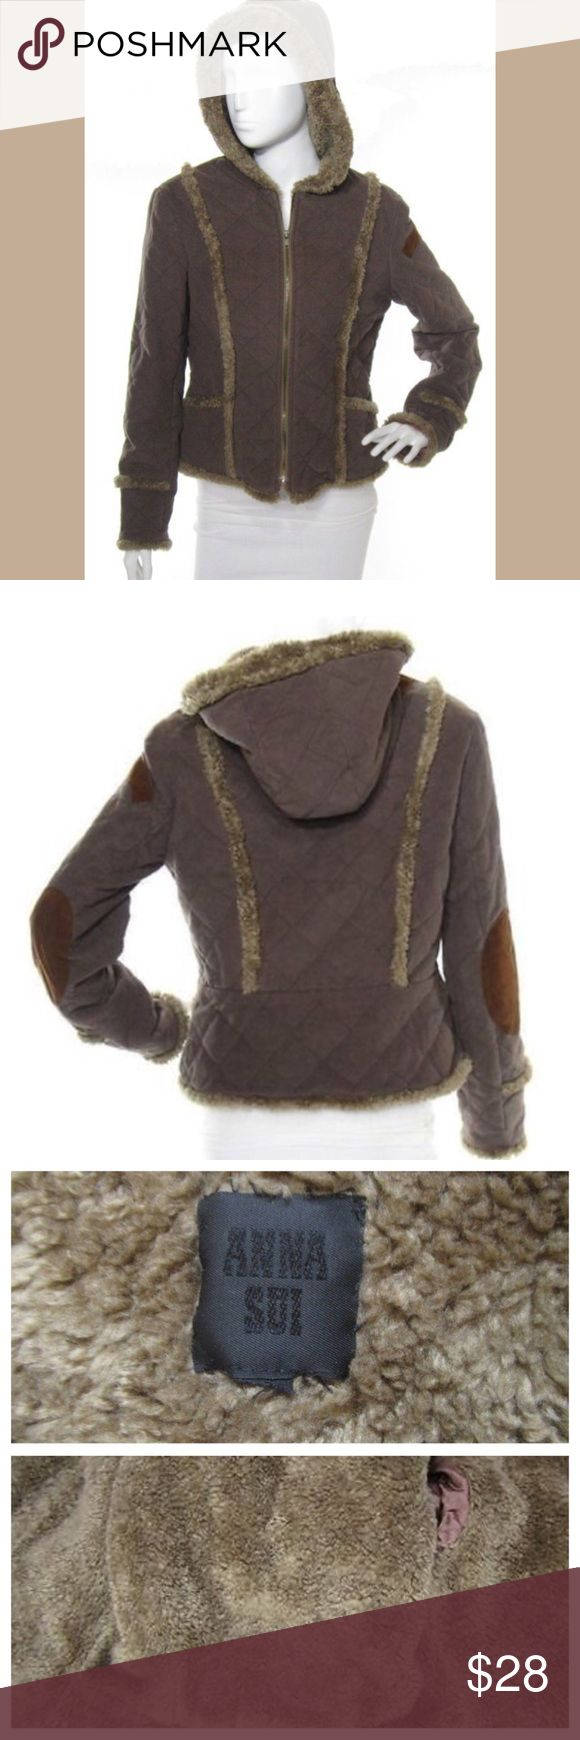 "Anna Sui Taupe Faux Sherpa Hoodie Jacket Anna Sui dark taupe quilted cotton faux shearling sherpa lined hooded jacket! Features a front zip closure, medium weight cotton body. Cozy warm faux shearling ""sherpa"" lining through the body and hood. Very good overall condition-gently used but still in great shape with a ton of life left. Tagged a size P (Petite), fits XS. **Smoke free home, additional measurements avail. upon request** Anna Sui Jackets & Coats"